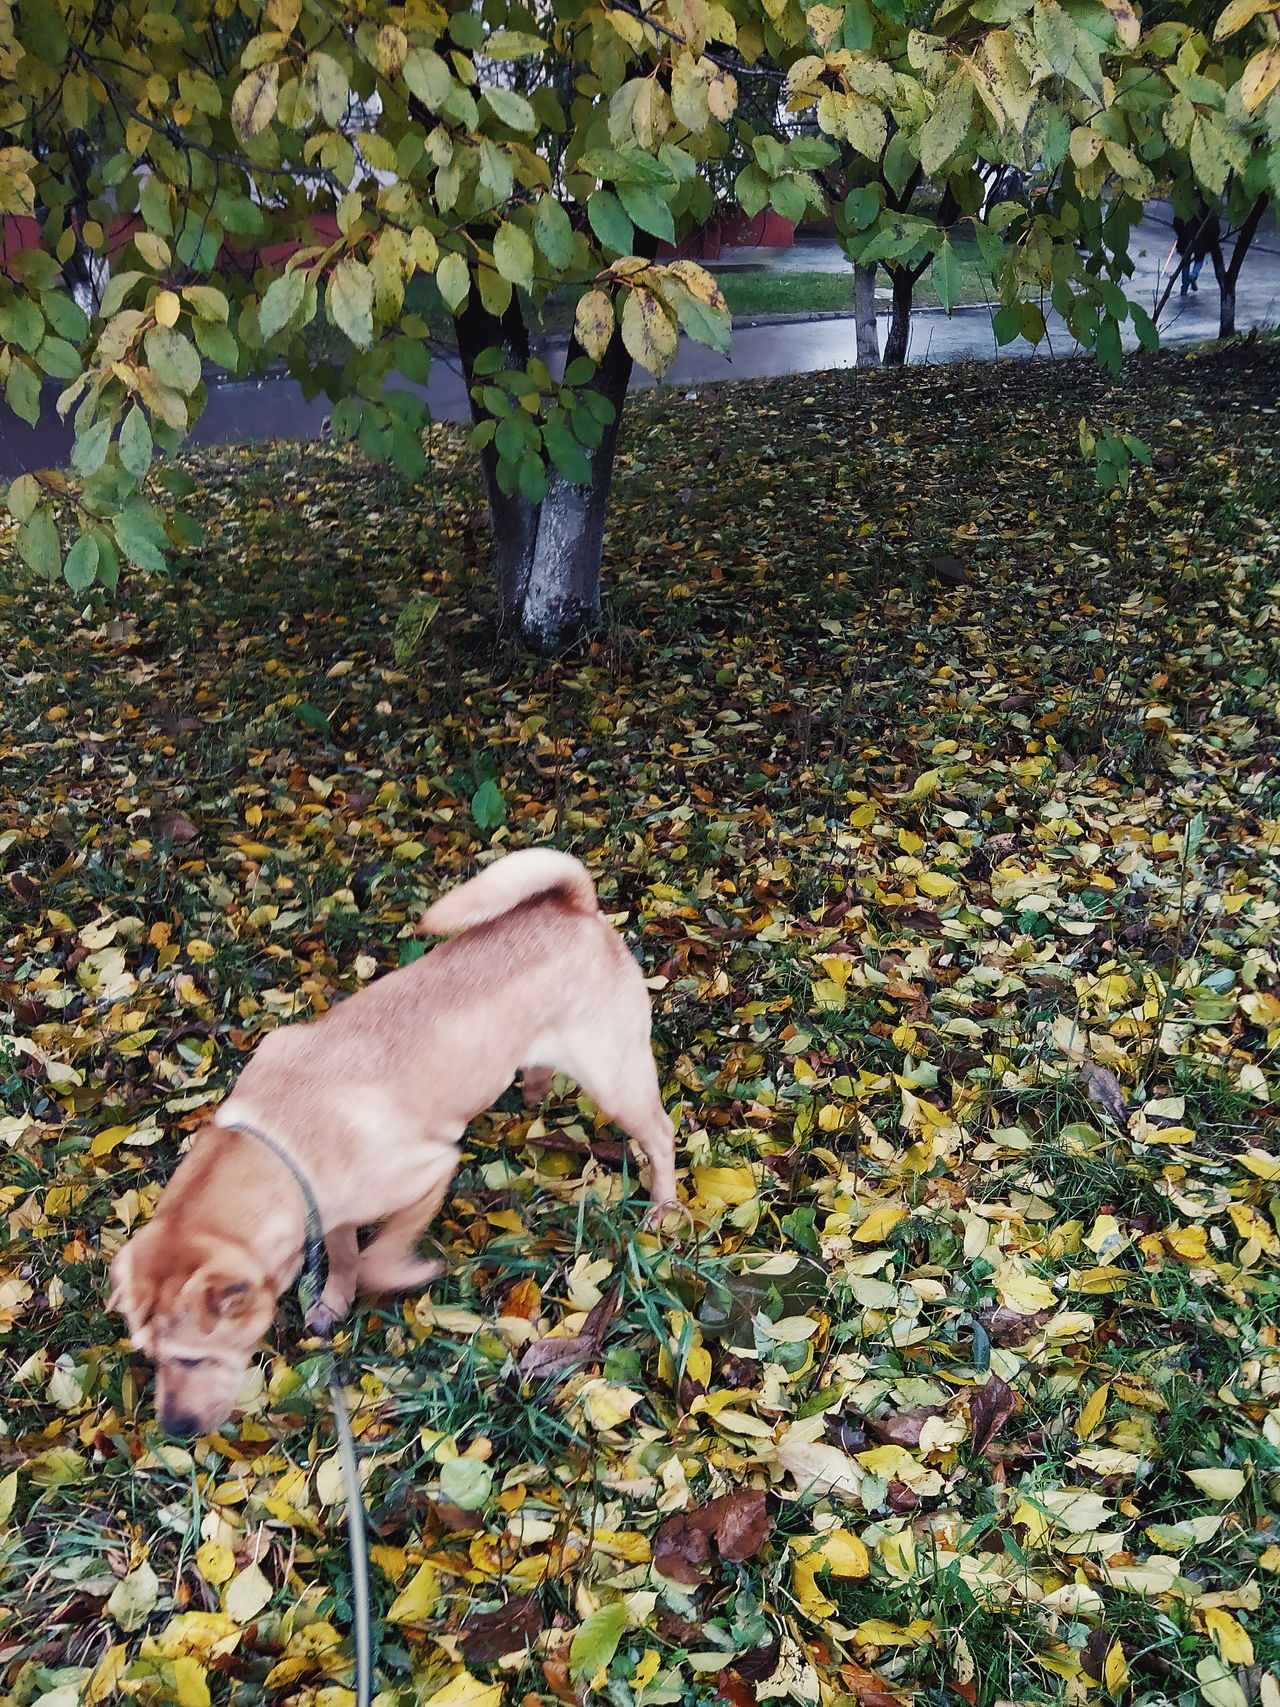 High Angle View Nature Outdoors Growth Grass Freshness Animal Themes Close-up Low Section Beauty In Nature Leaf Day Lifestyles Scenics Dog Animal Behavior Dog Love Pet Photography  Pet Animals Animal Photography Animal Representation Fall Fall Beauty Autumn